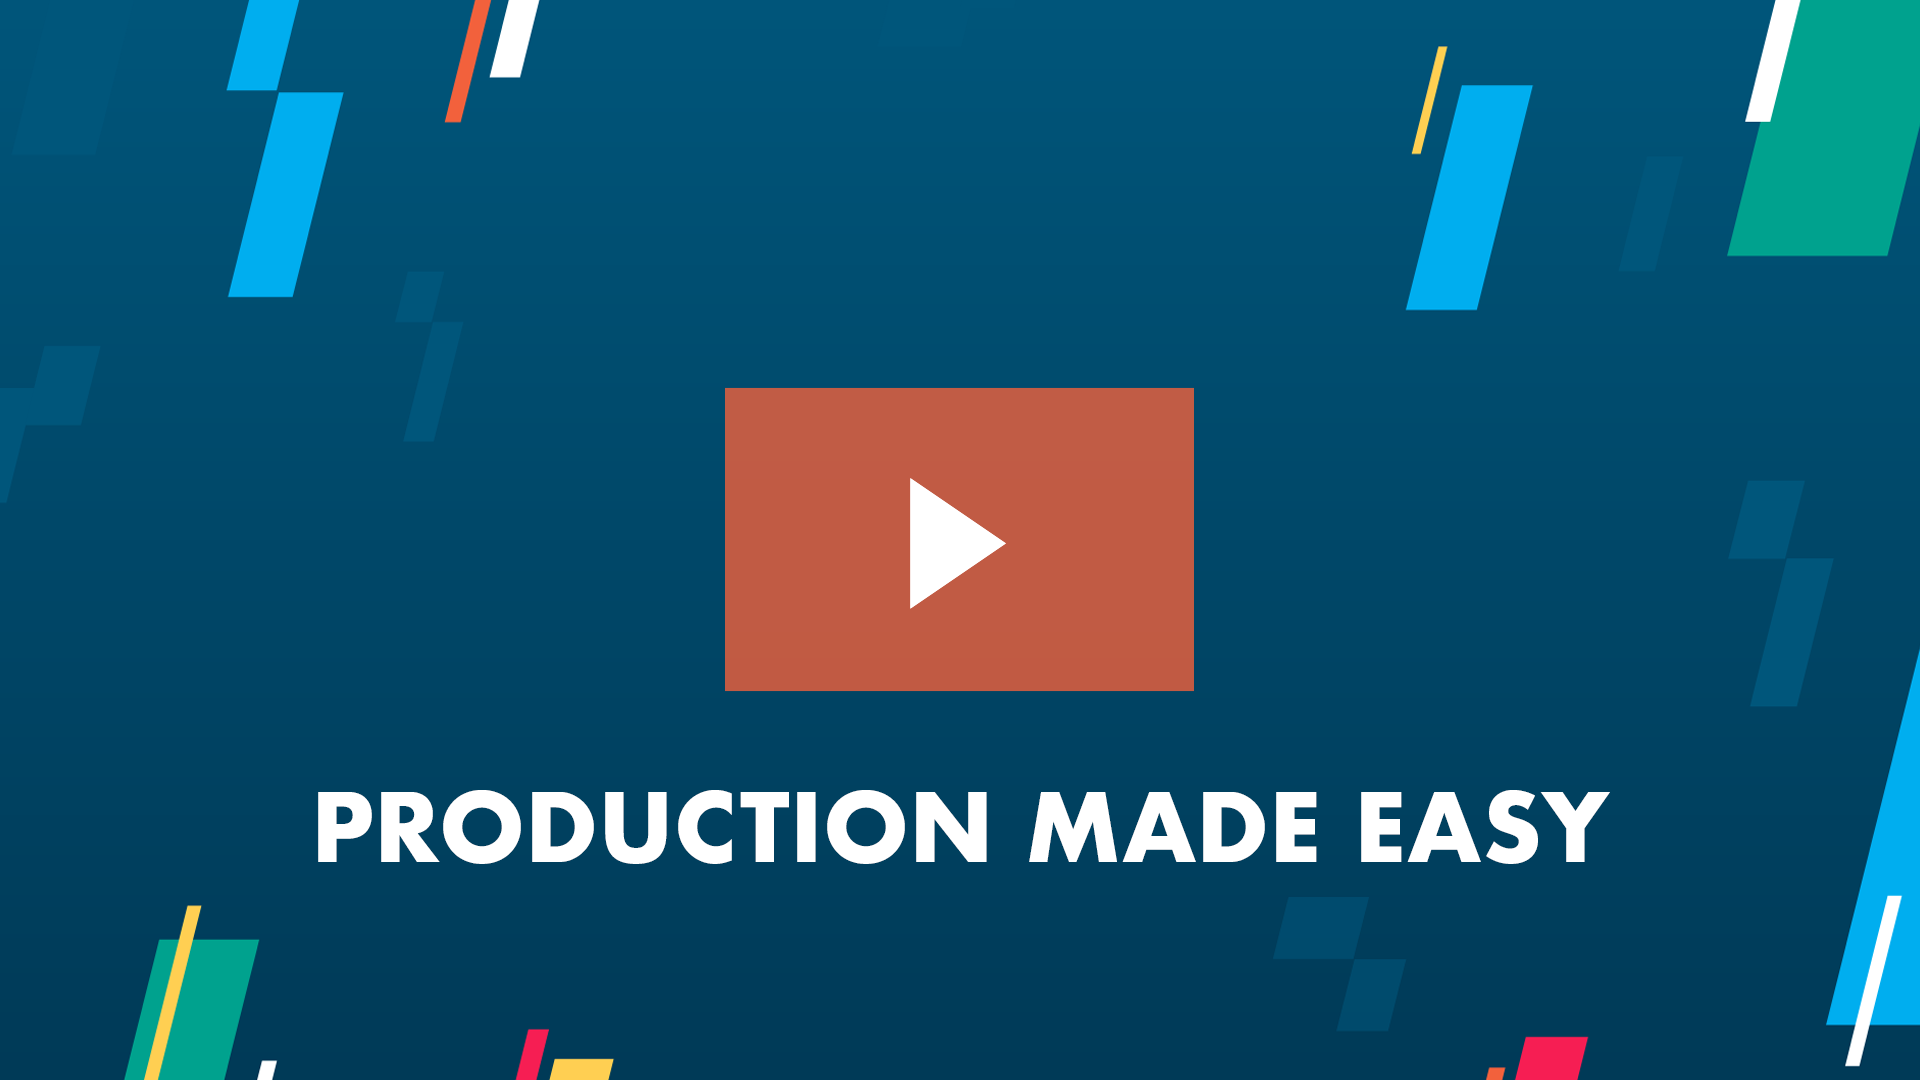 Production made easy